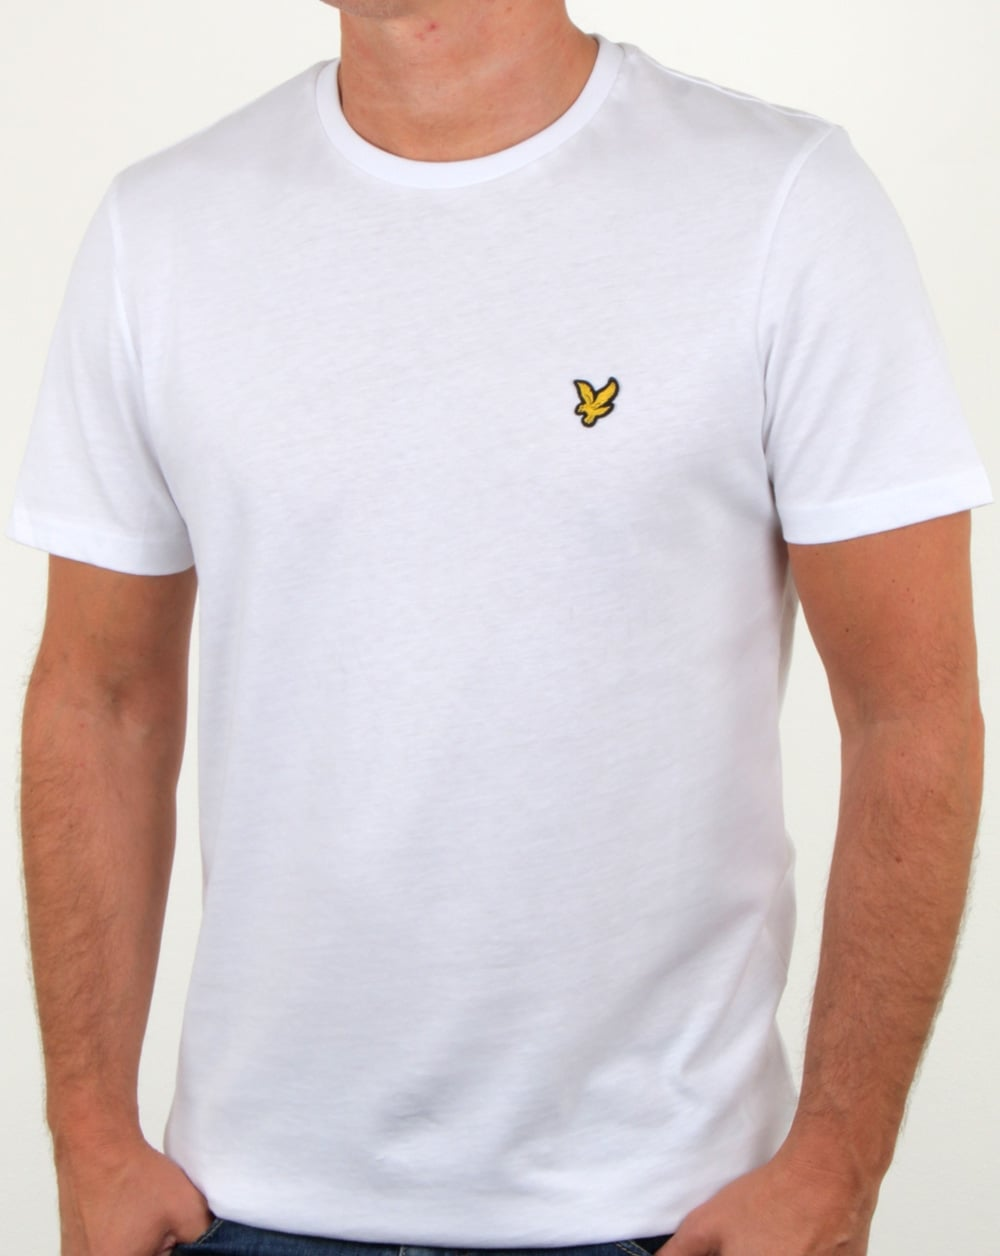 Lyle and scott t shirt white for Lyle and scott shirt sale